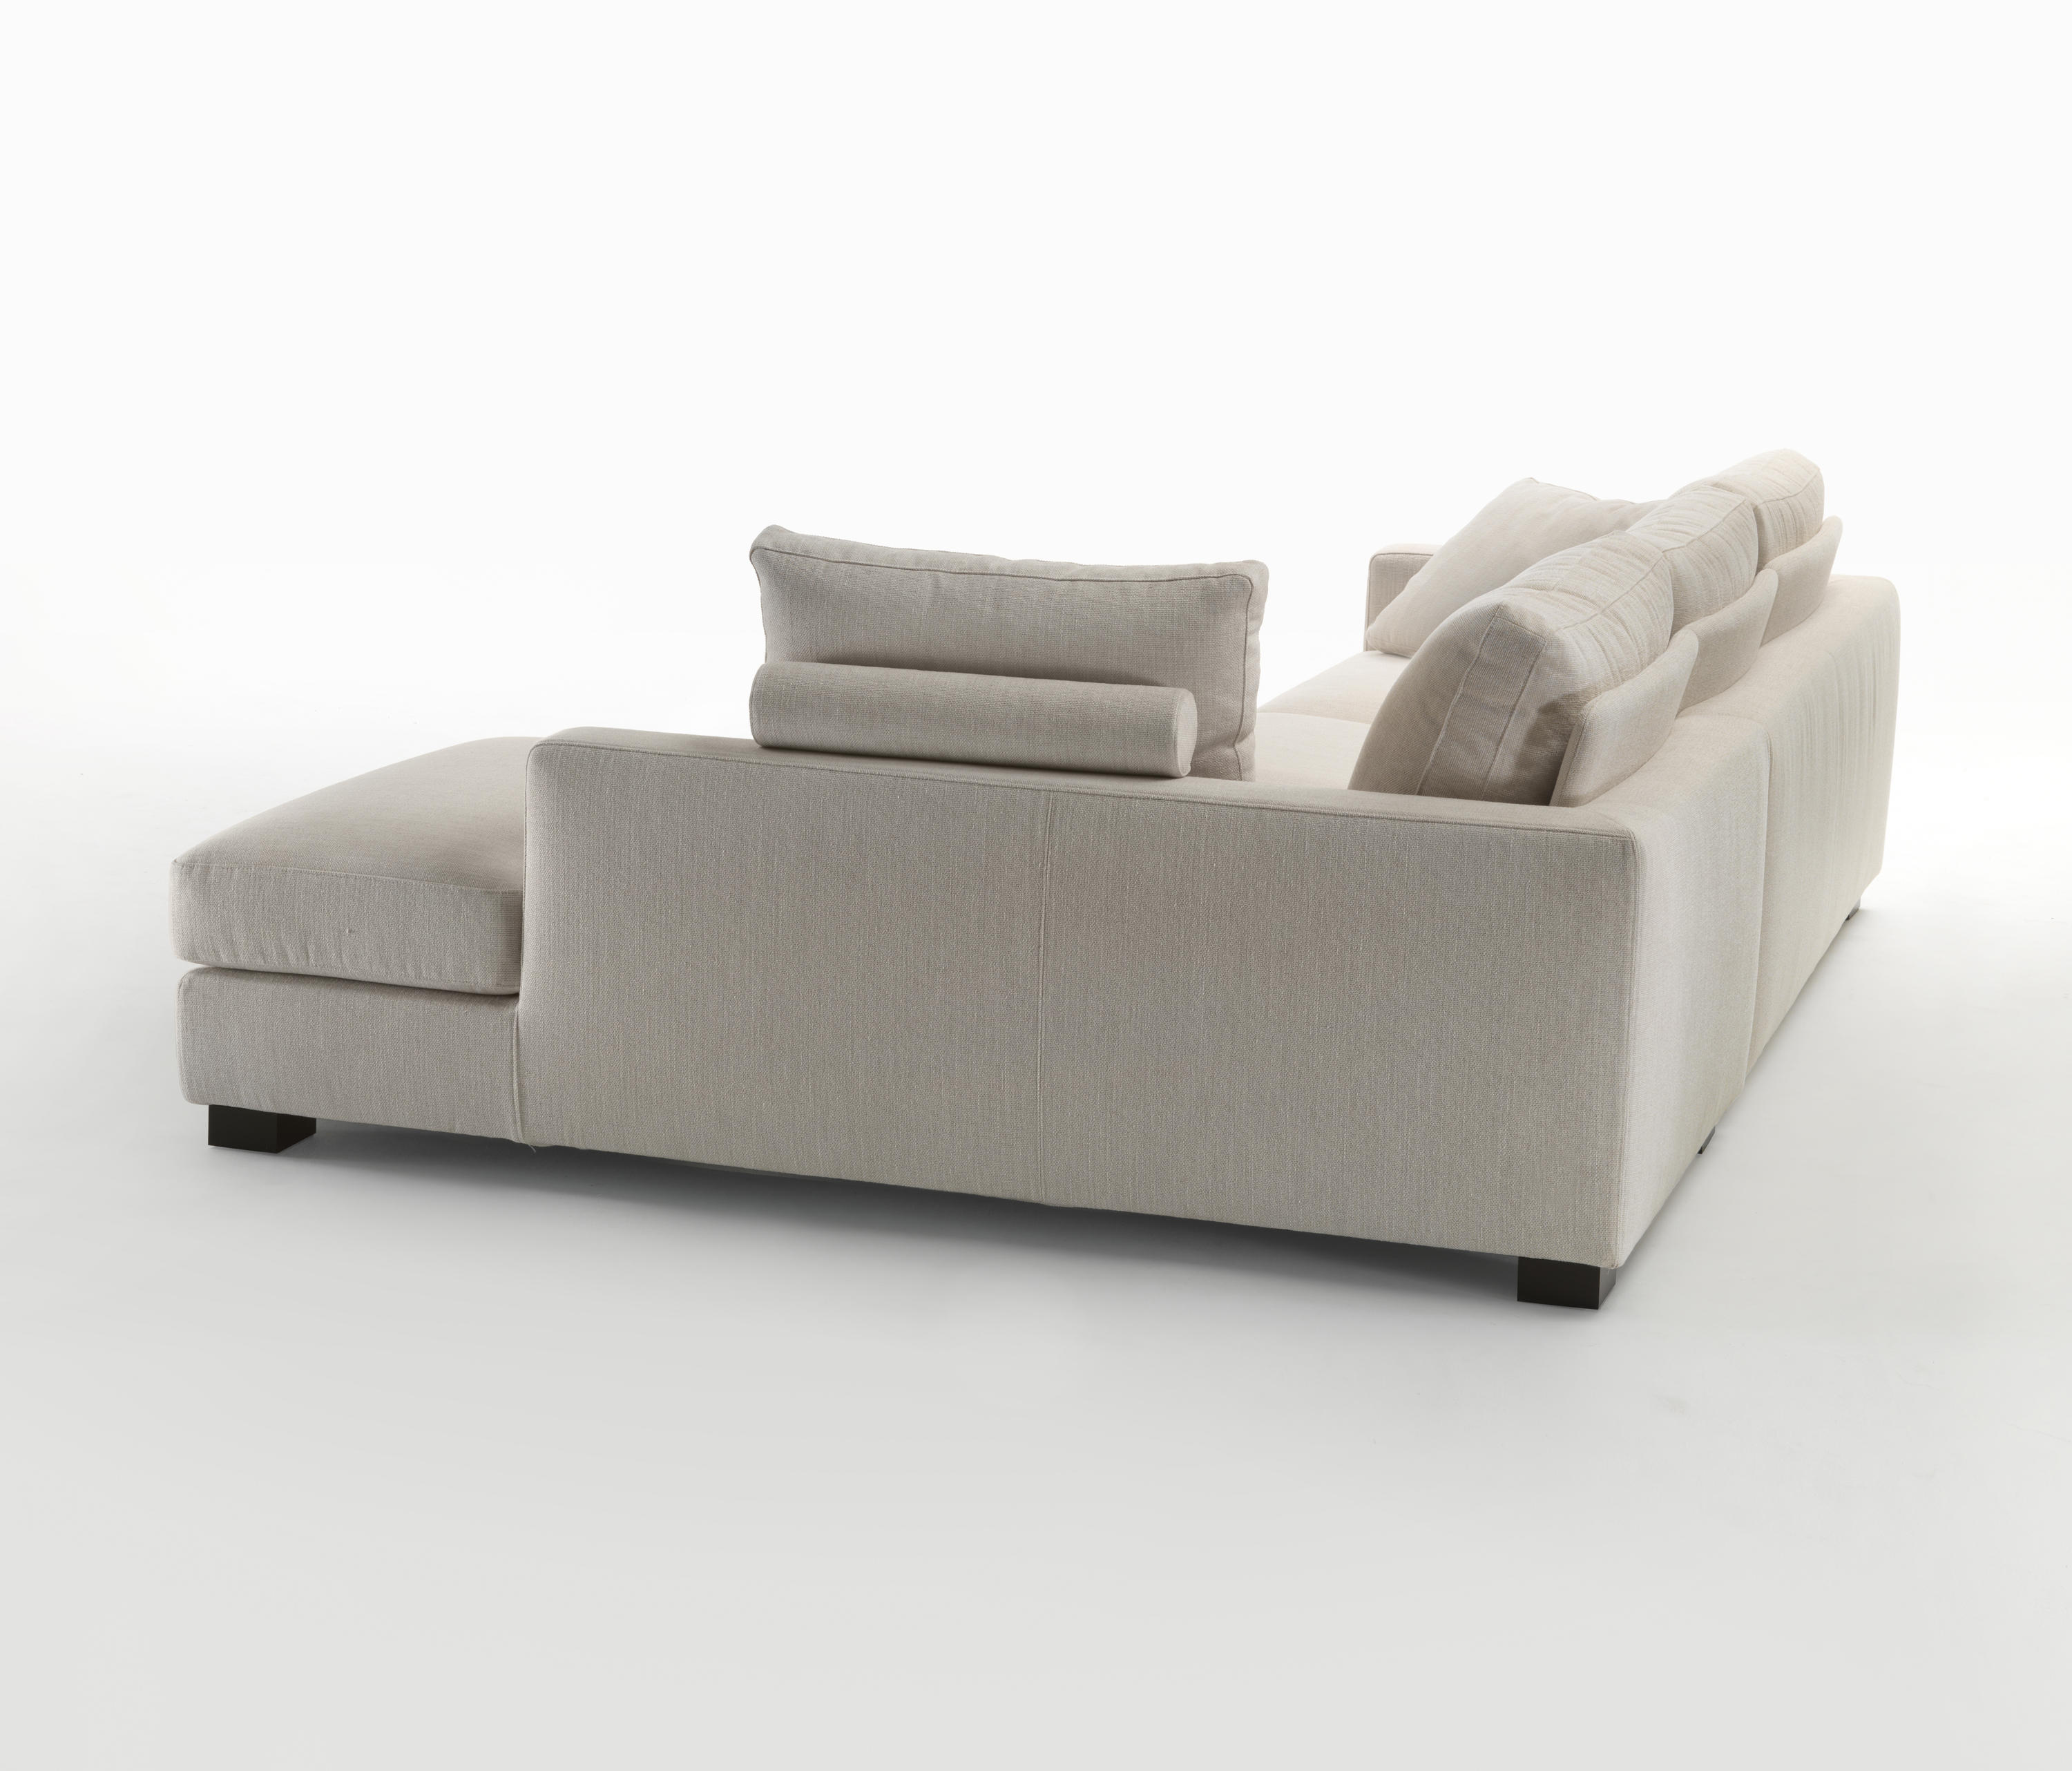 OLIVER CORNER POSITION Lounge sofas from Giulio Marelli